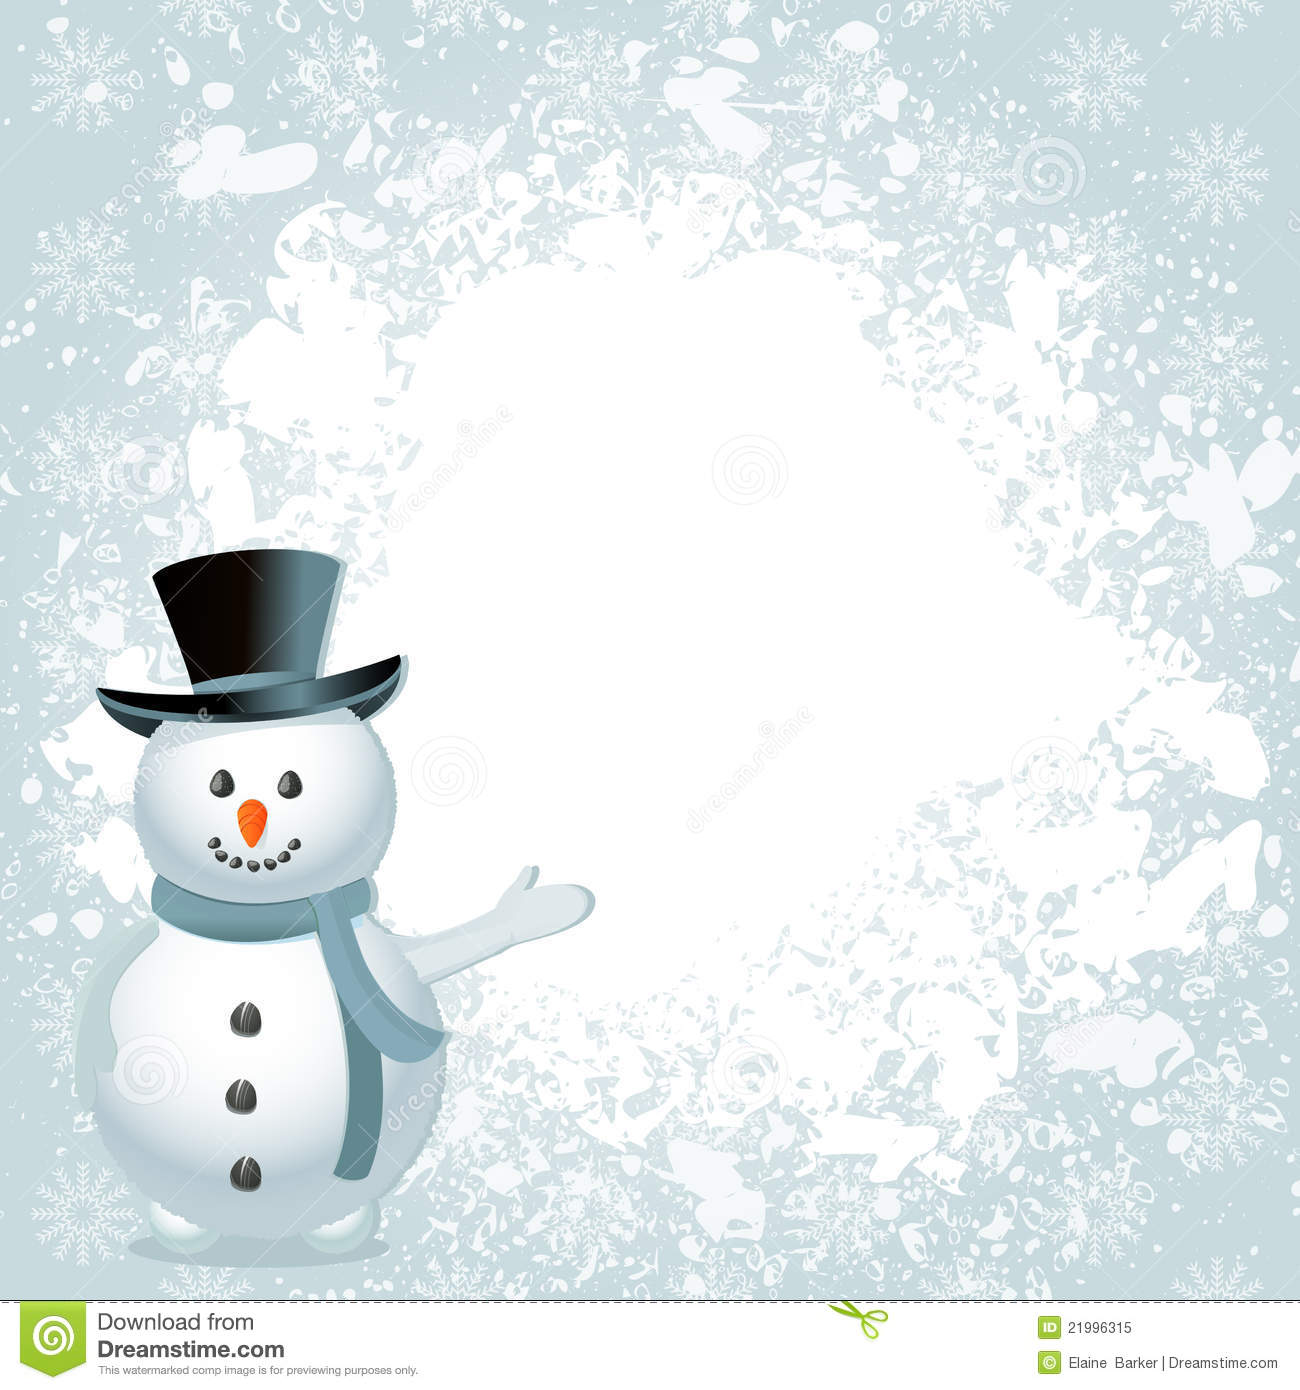 Christmas snowman background royalty free stock photo image